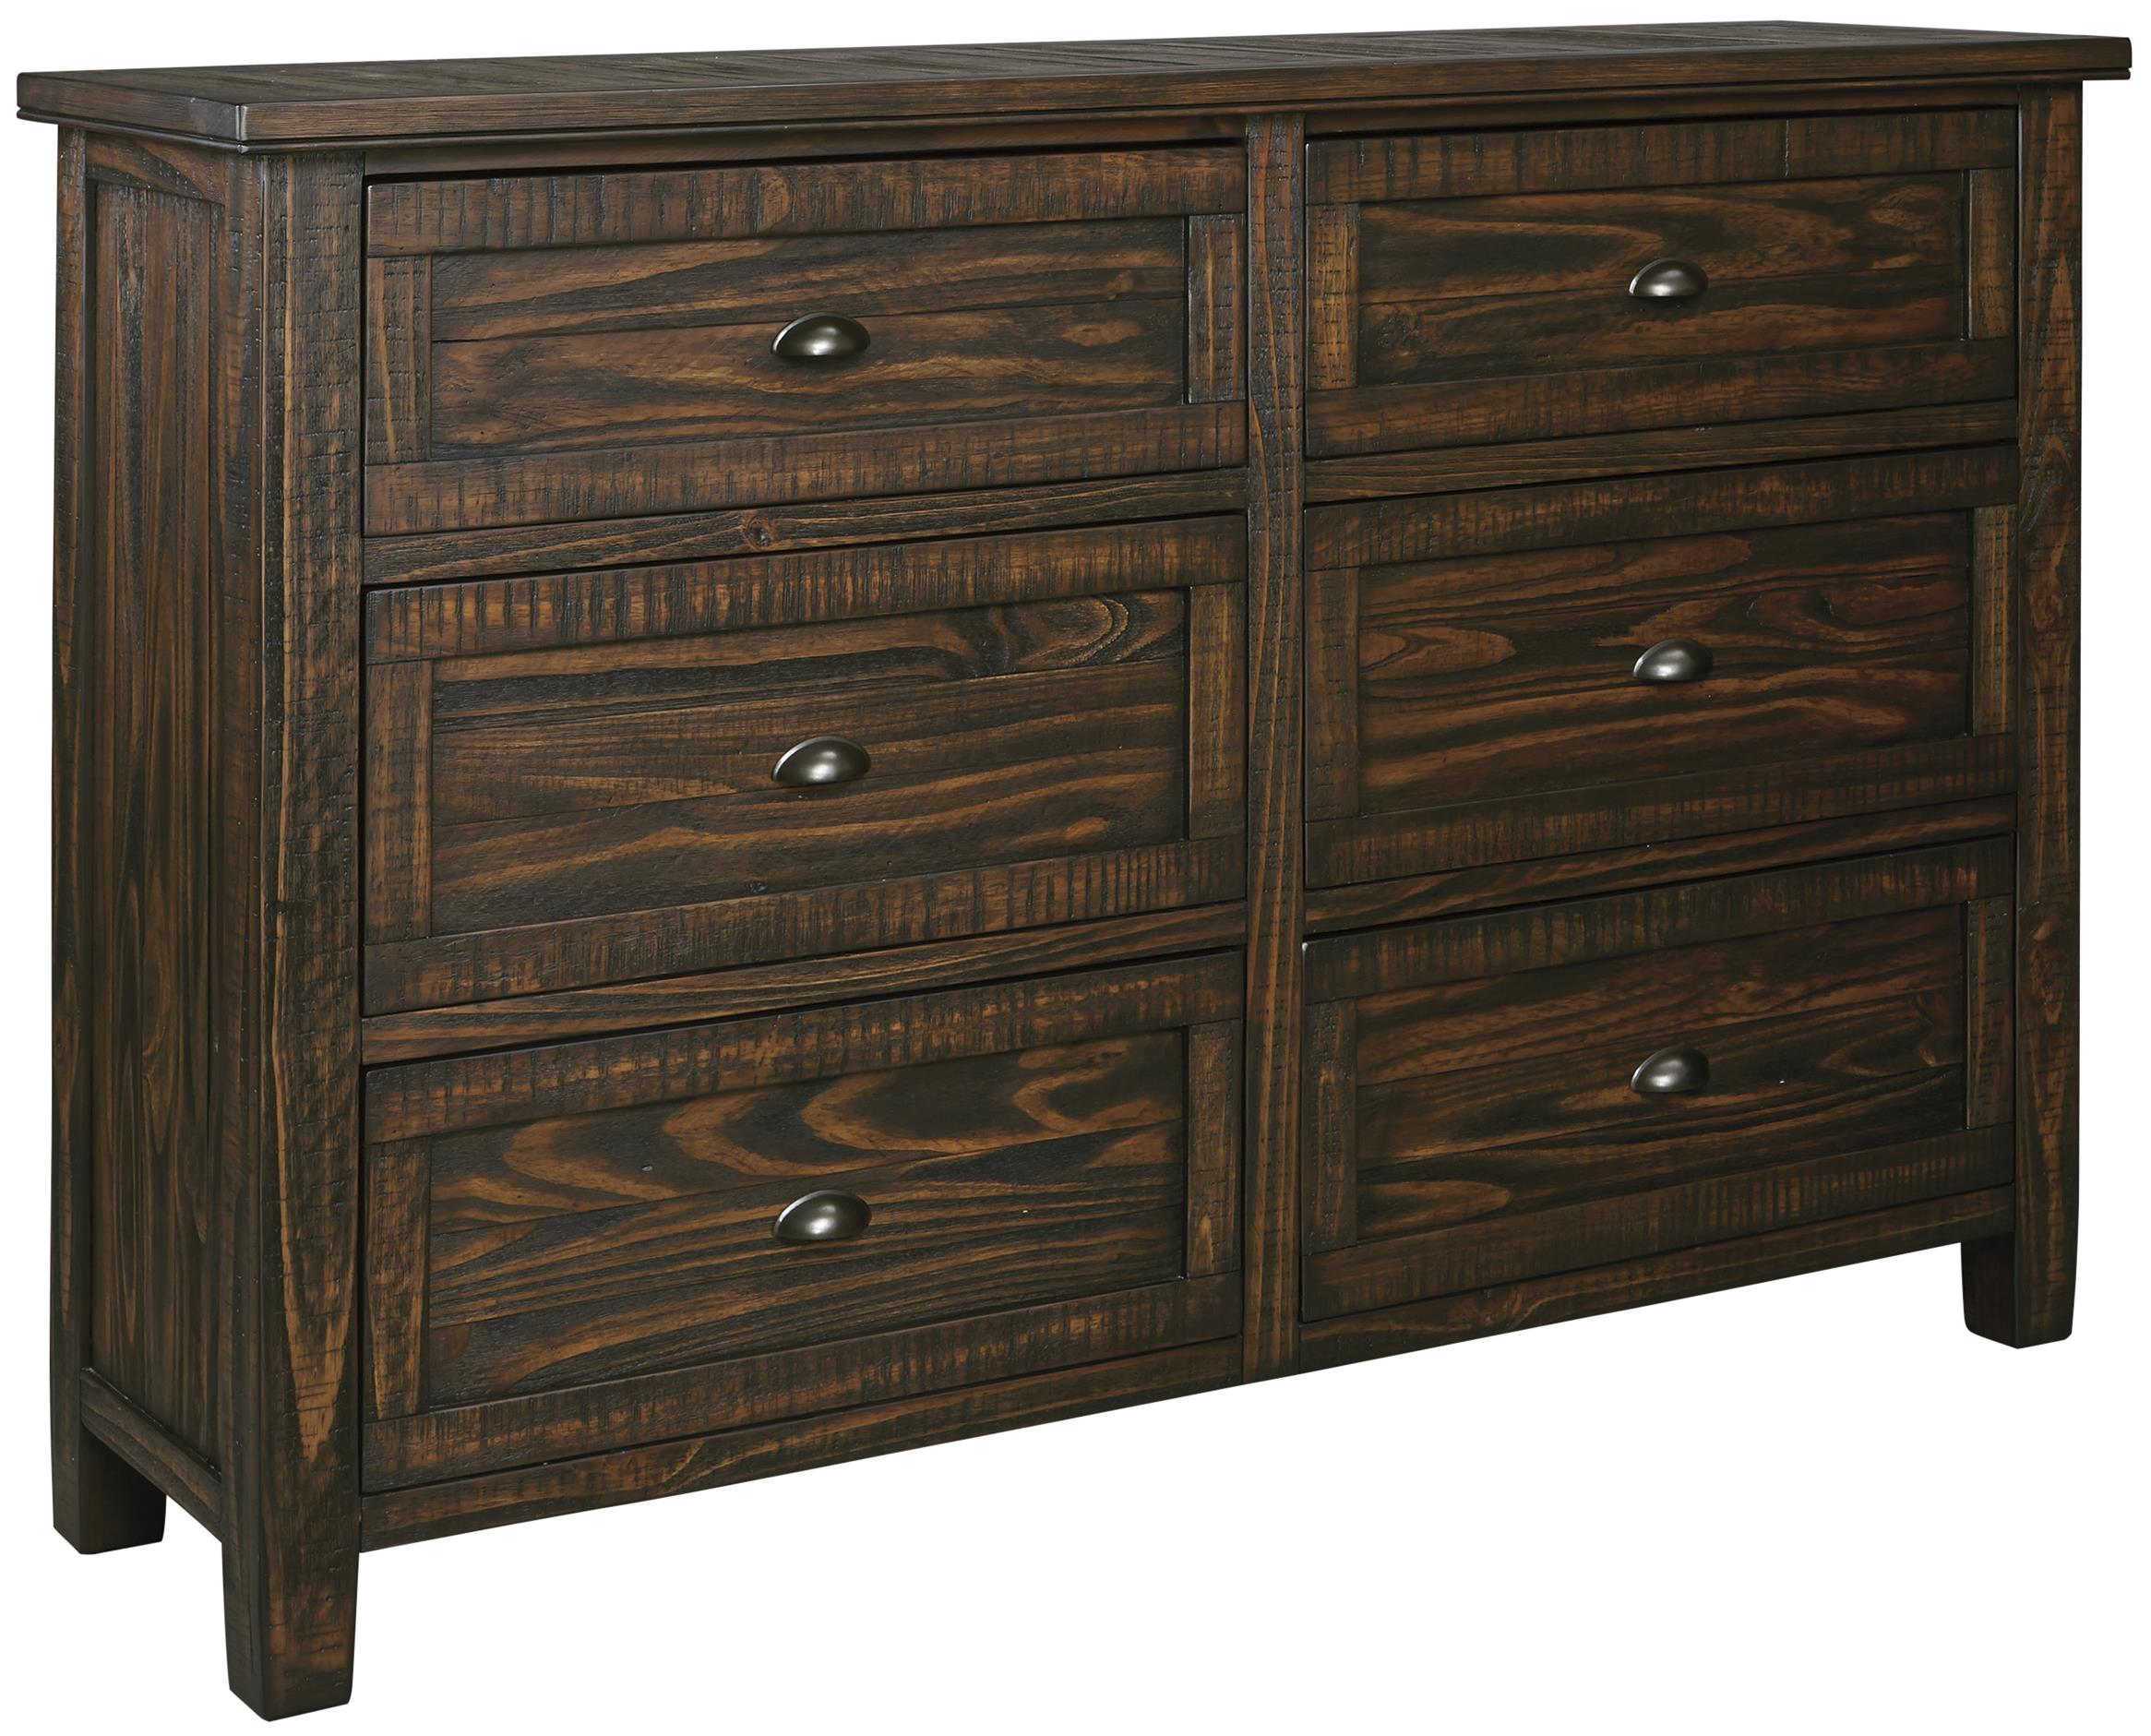 Signature Design by Ashley Trudell Dresser - Item Number: B658-31